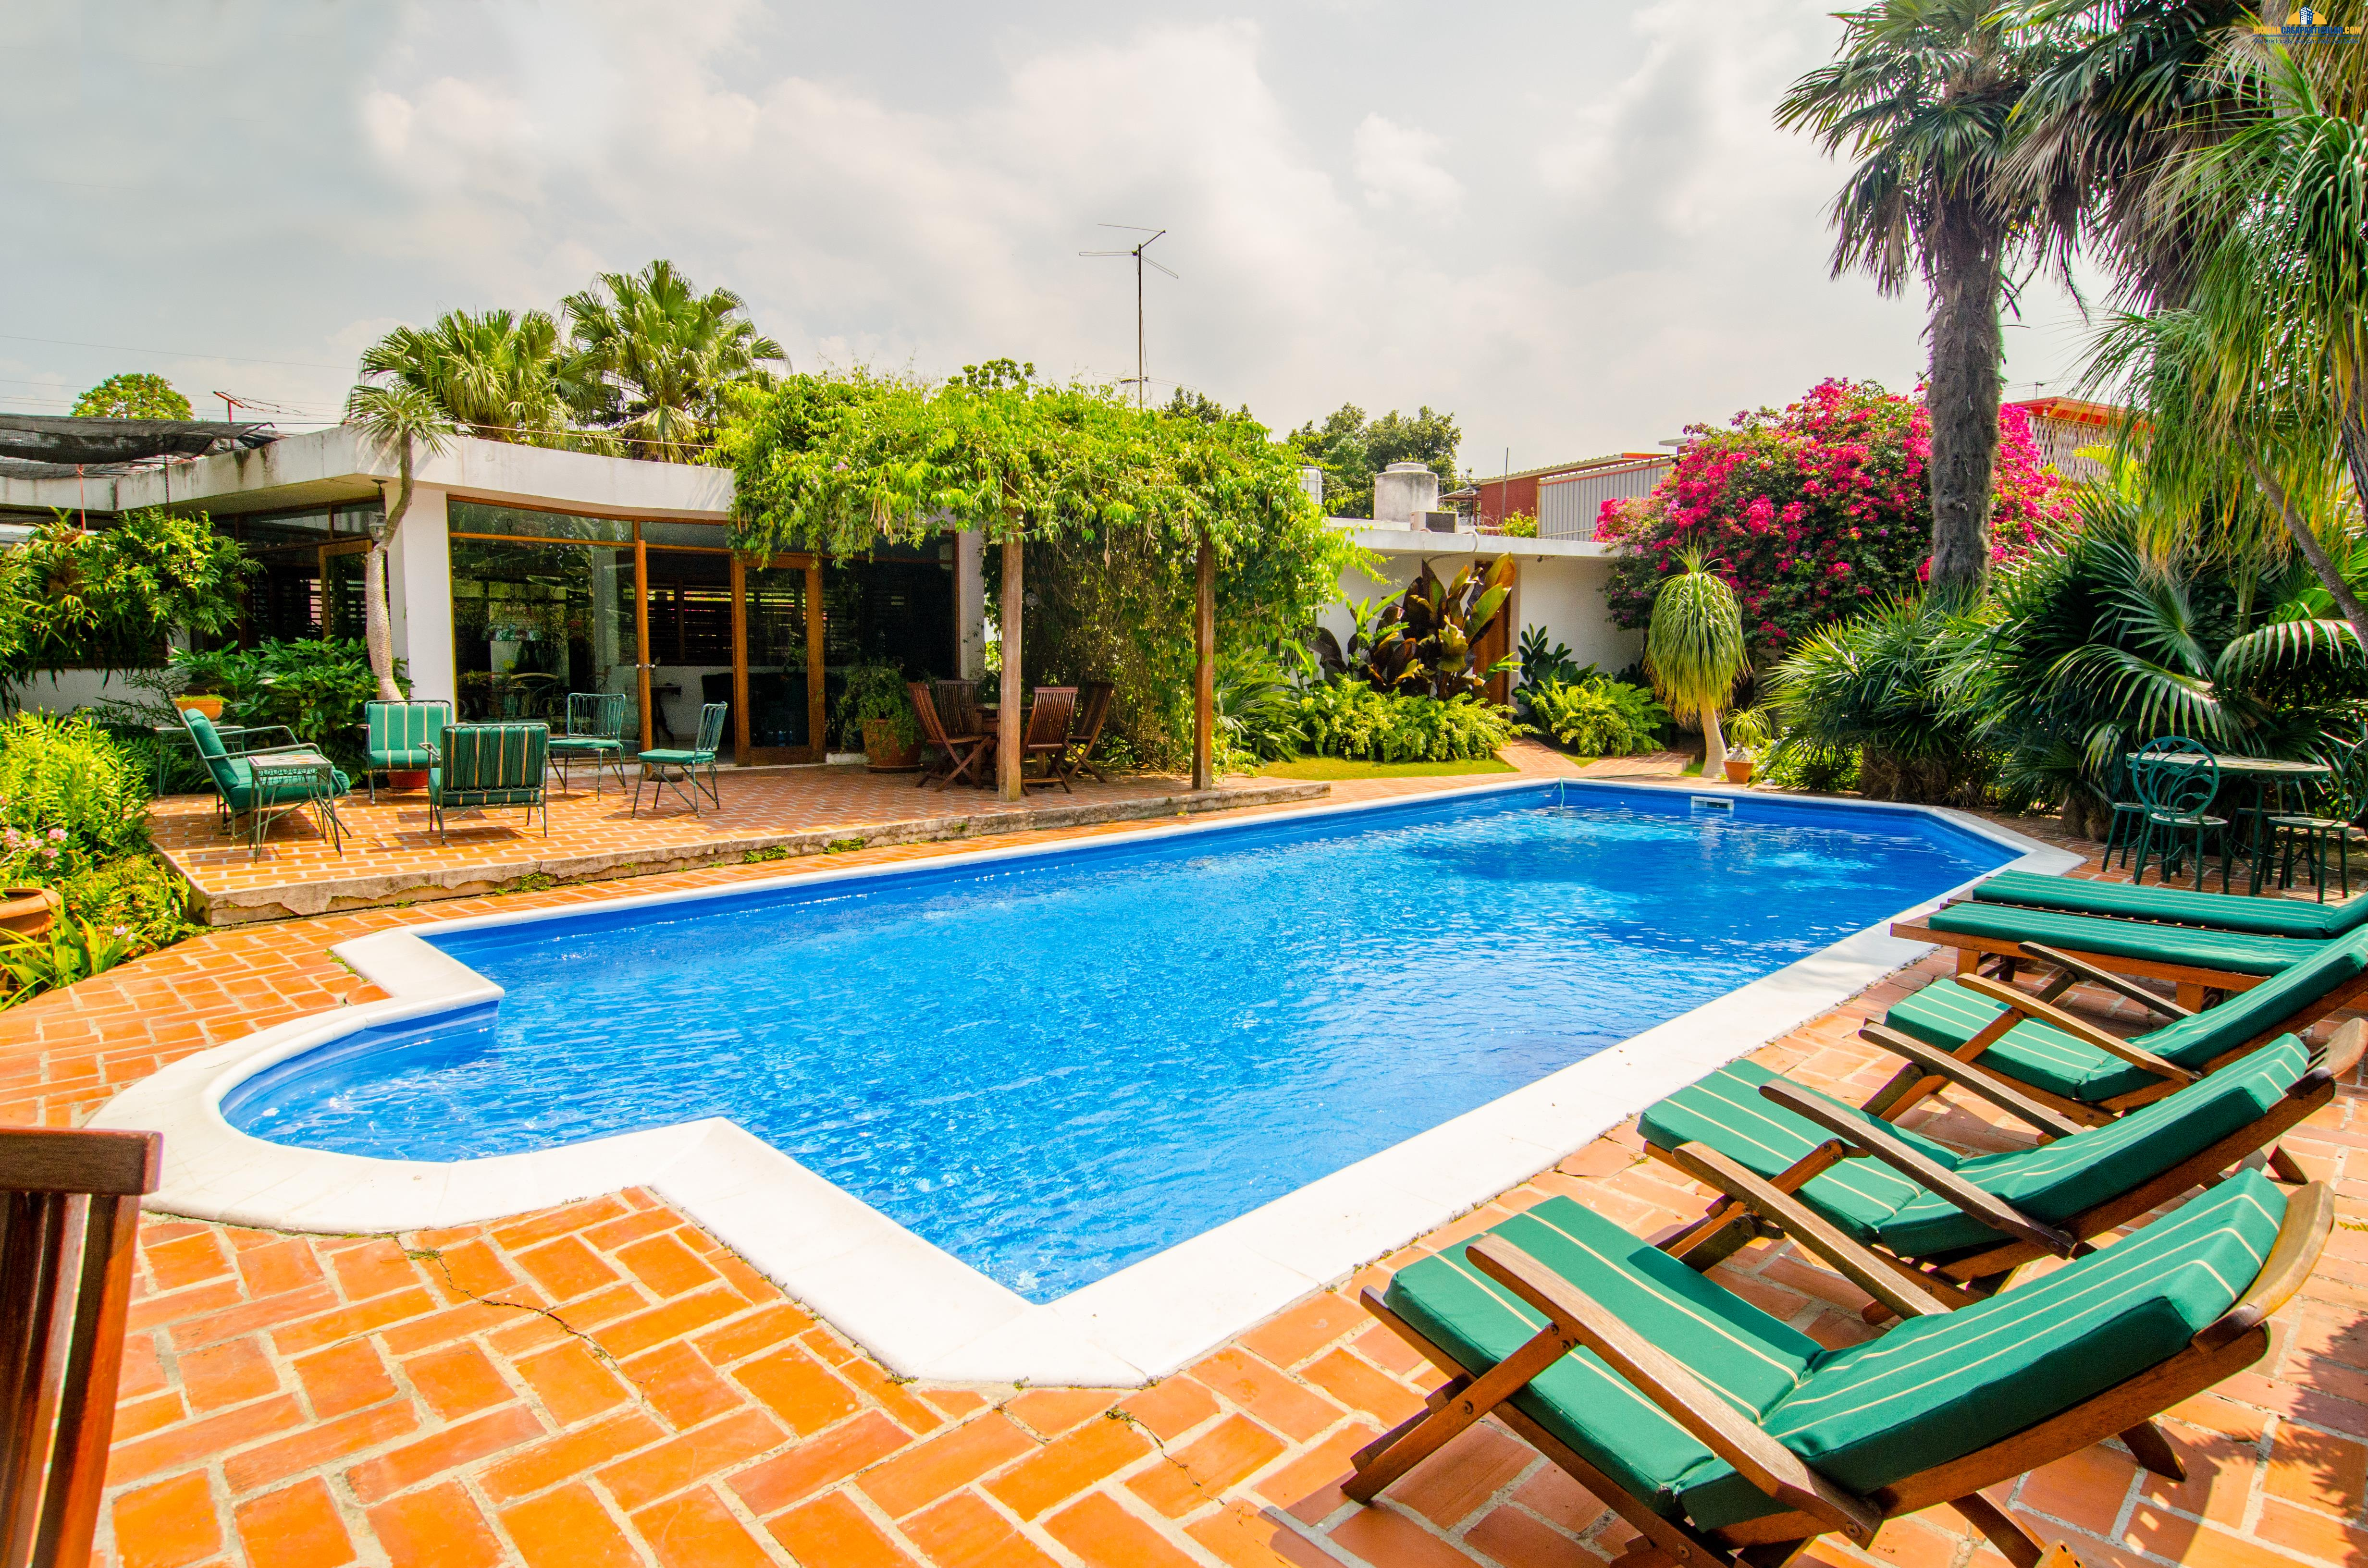 Villas with Swimming Pool Villa Mary with Swimming Pool Havana